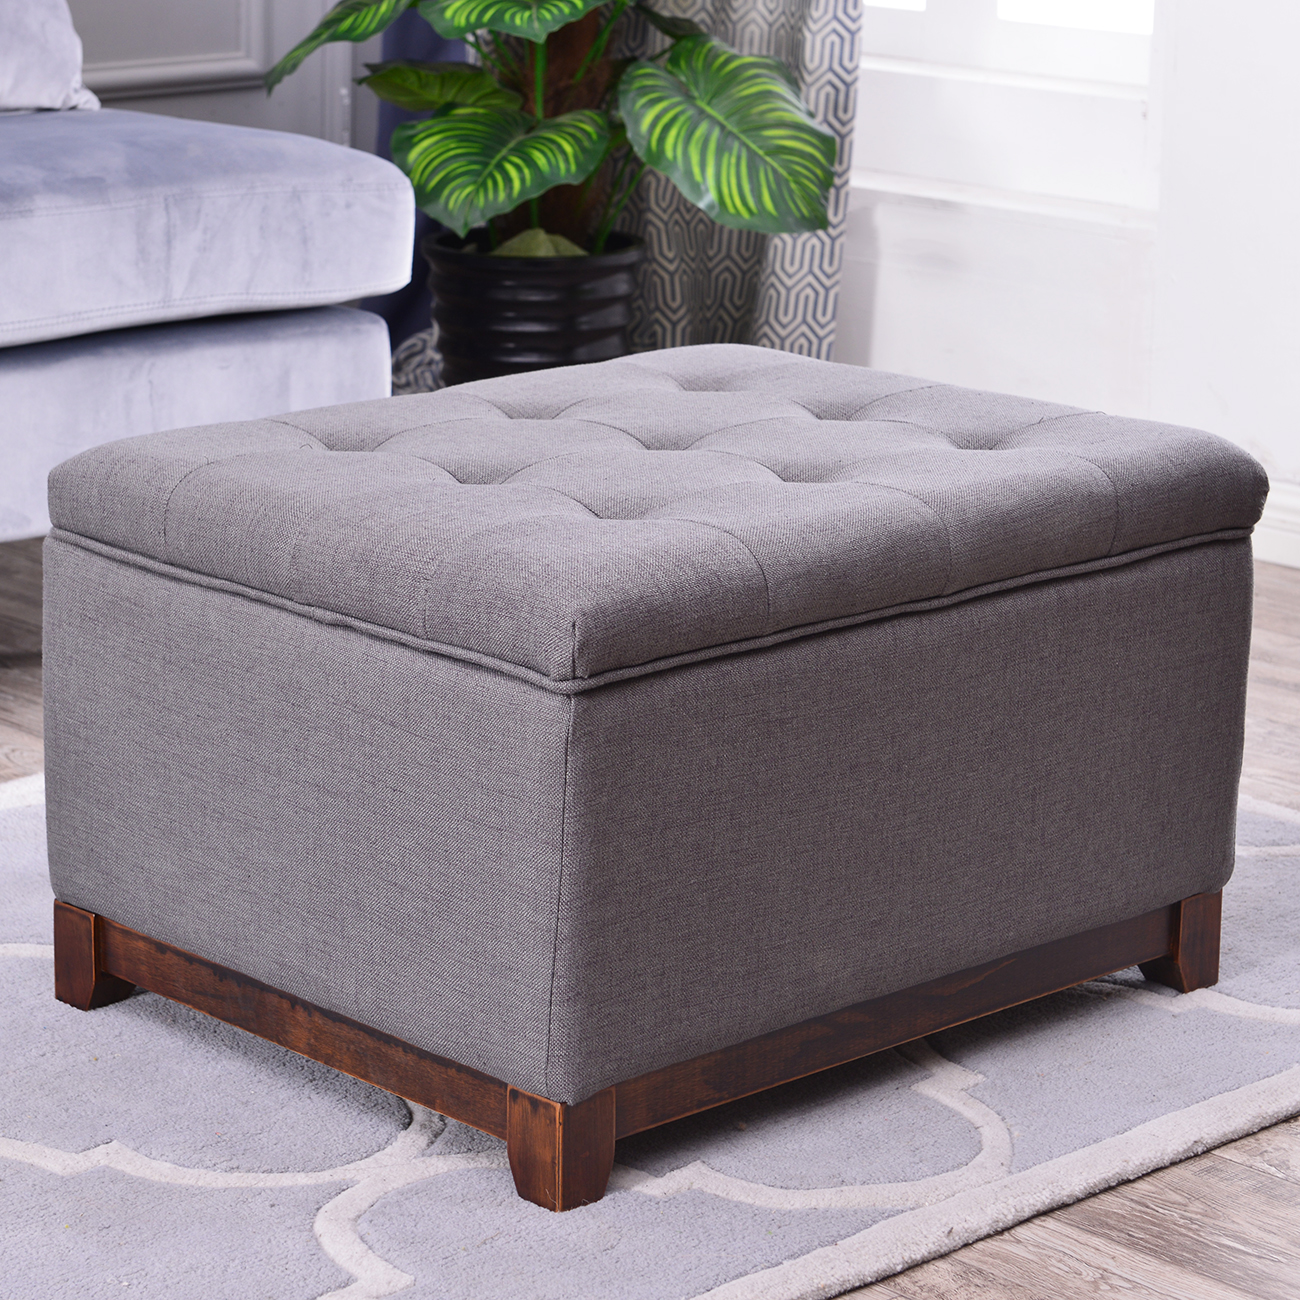 Large Storage Ottoman Stool Bench Seat Linen Tufted